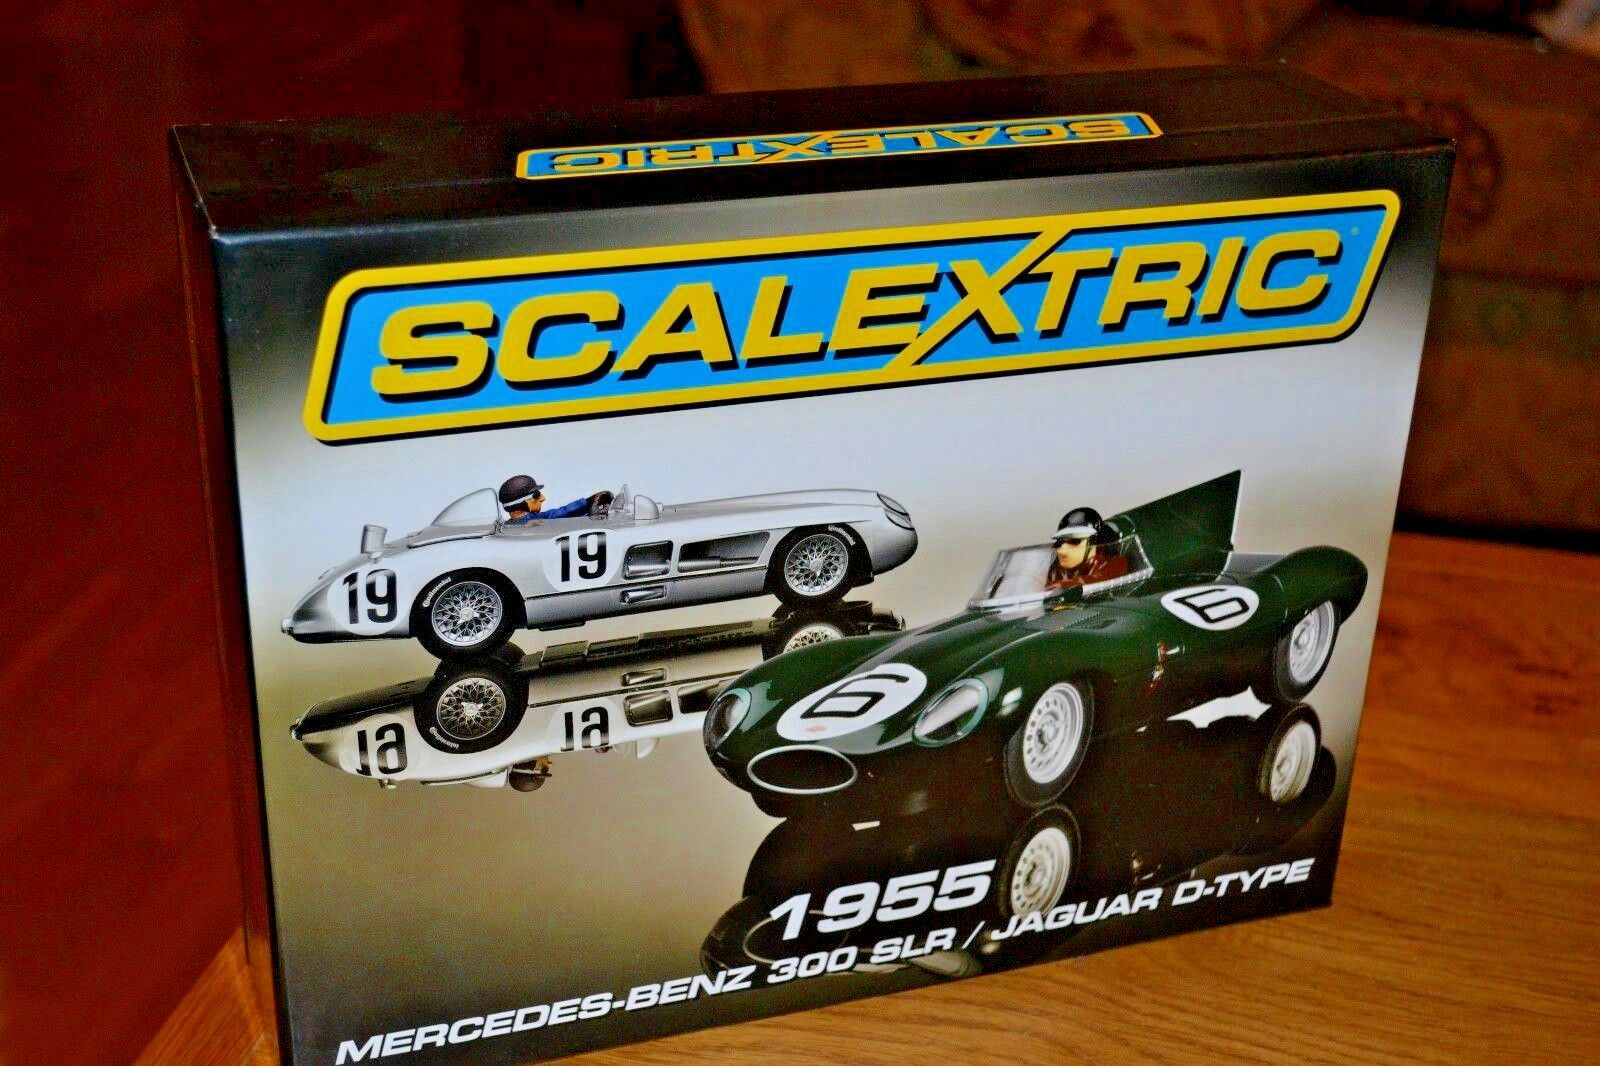 Scalextric 1955 Mercedes-Benz 300 SLR and Jaguar D-Type boxed set C3058A